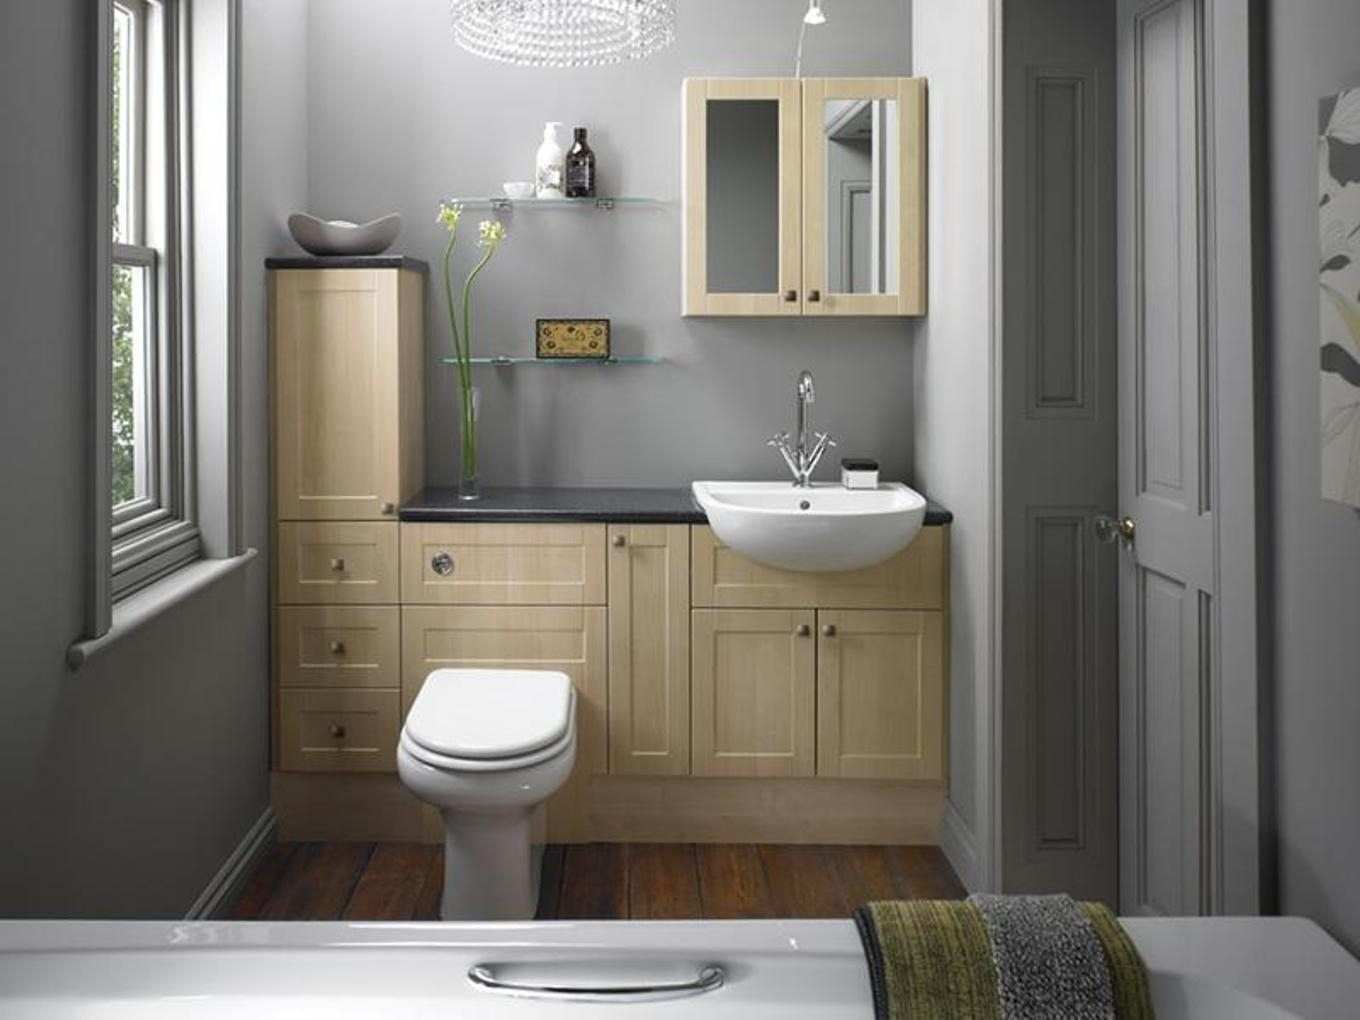 Bathroom Narrow Depth Bathroom Vanity Cabinet With 12 Inch Deep